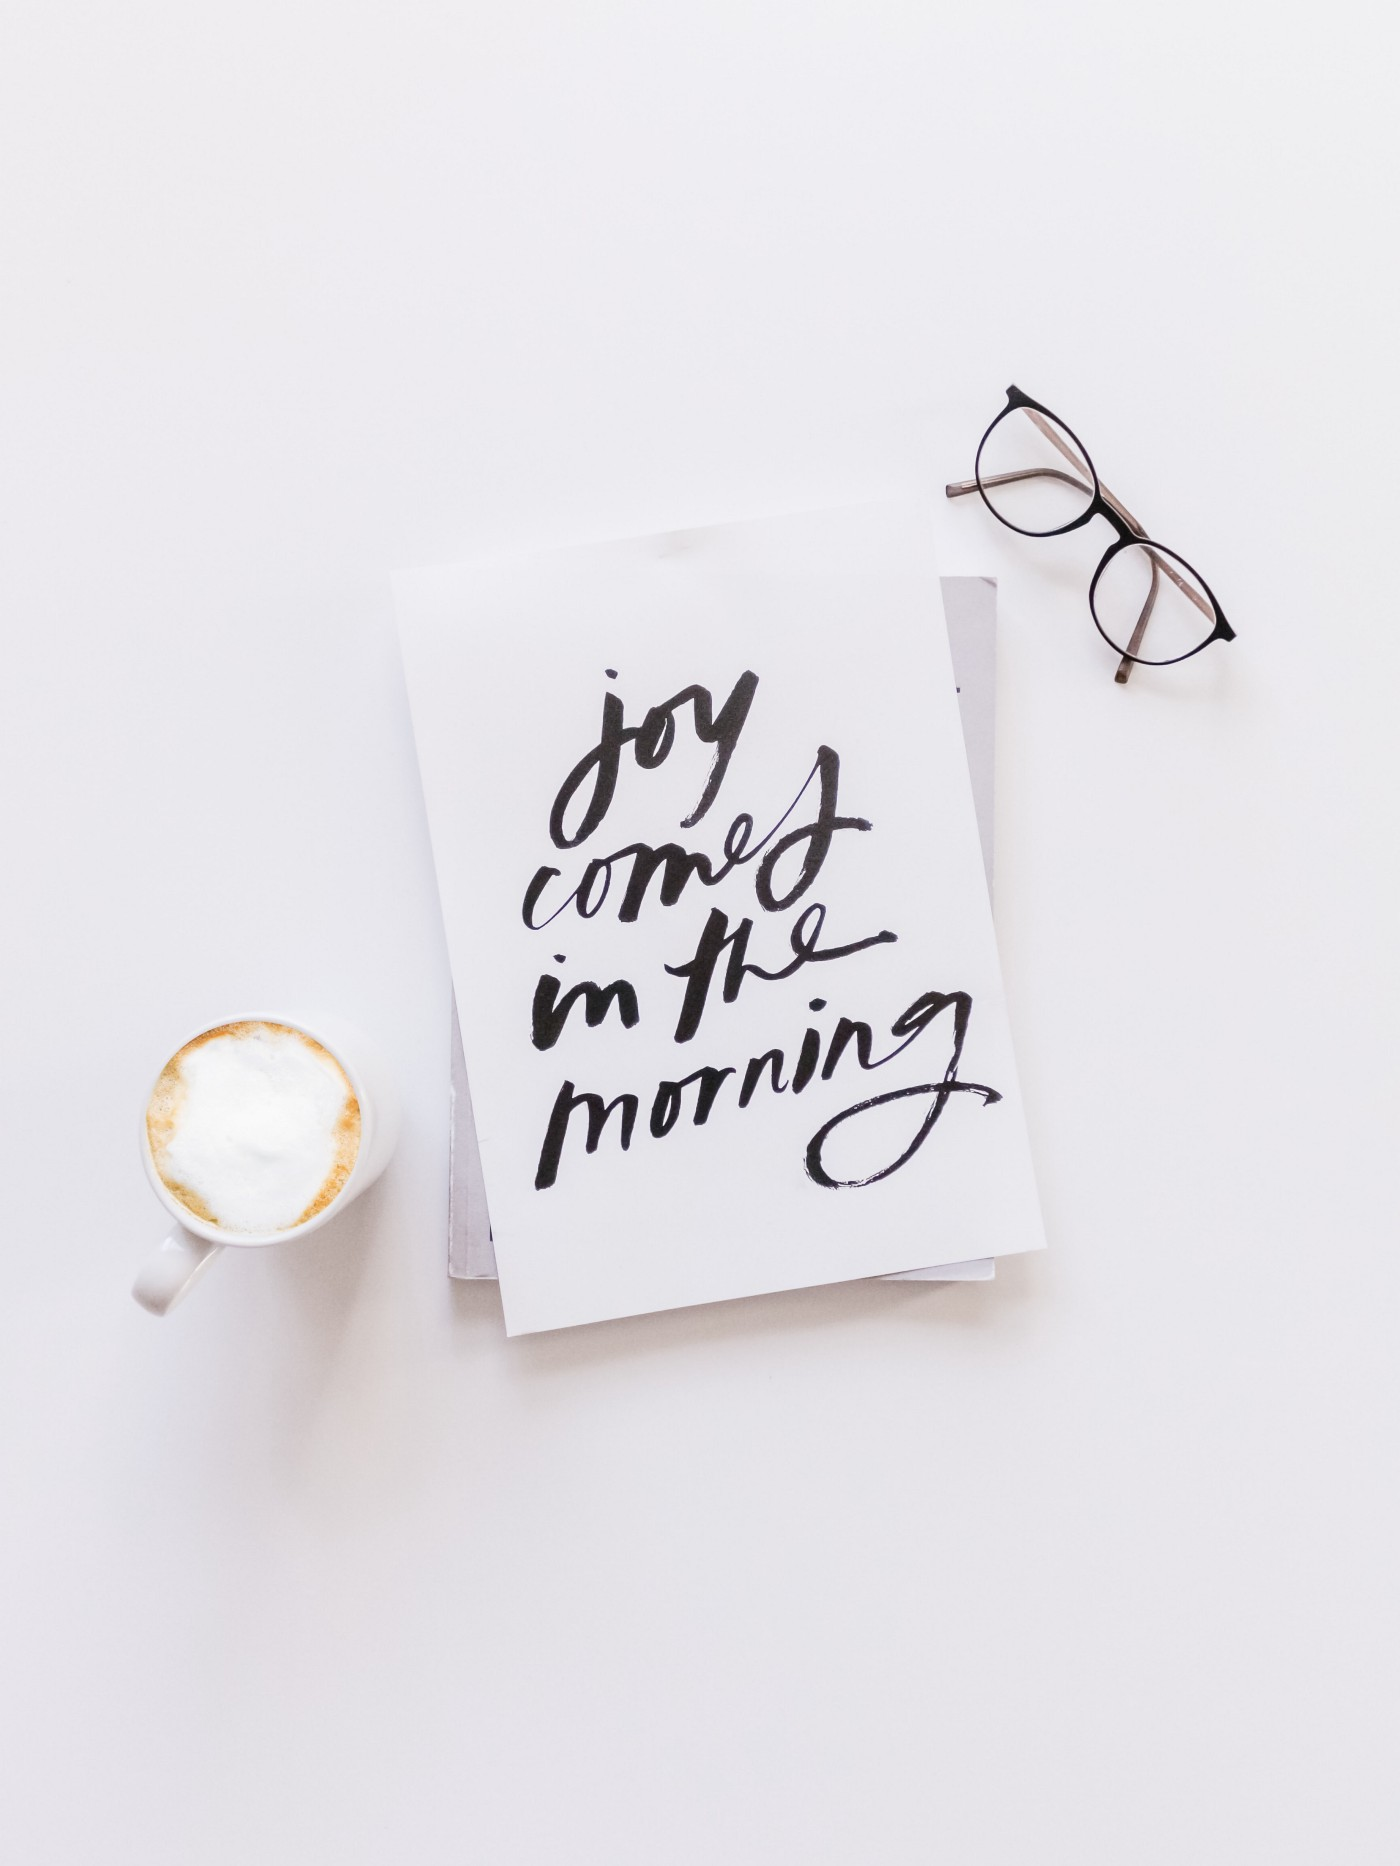 Joy comes in the morning calligraphy Photo by Nicole Honeywill on Unsplash